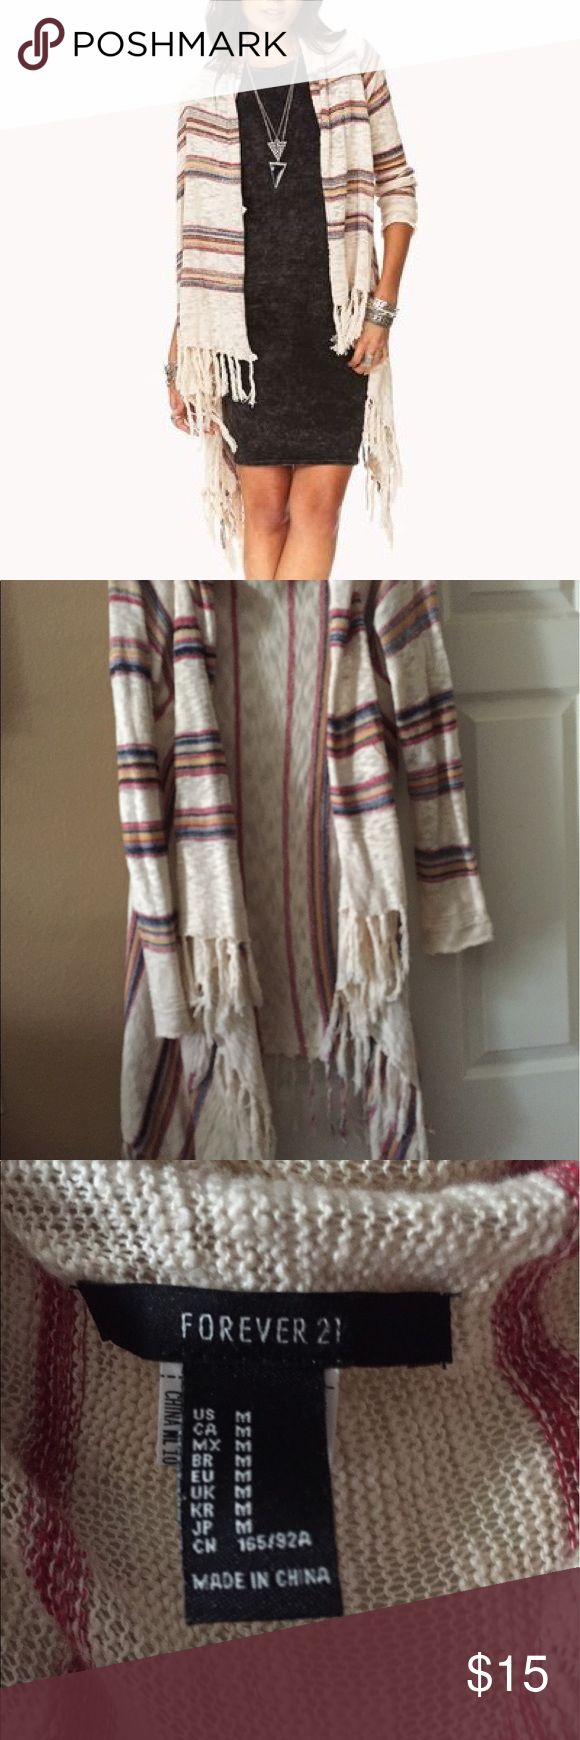 """Forever 21 long striped cardigan Cute striped cardigan 🌷🌷""""no reasonable offer refused """"✨✨ Forever 21 Sweaters Cardigans"""